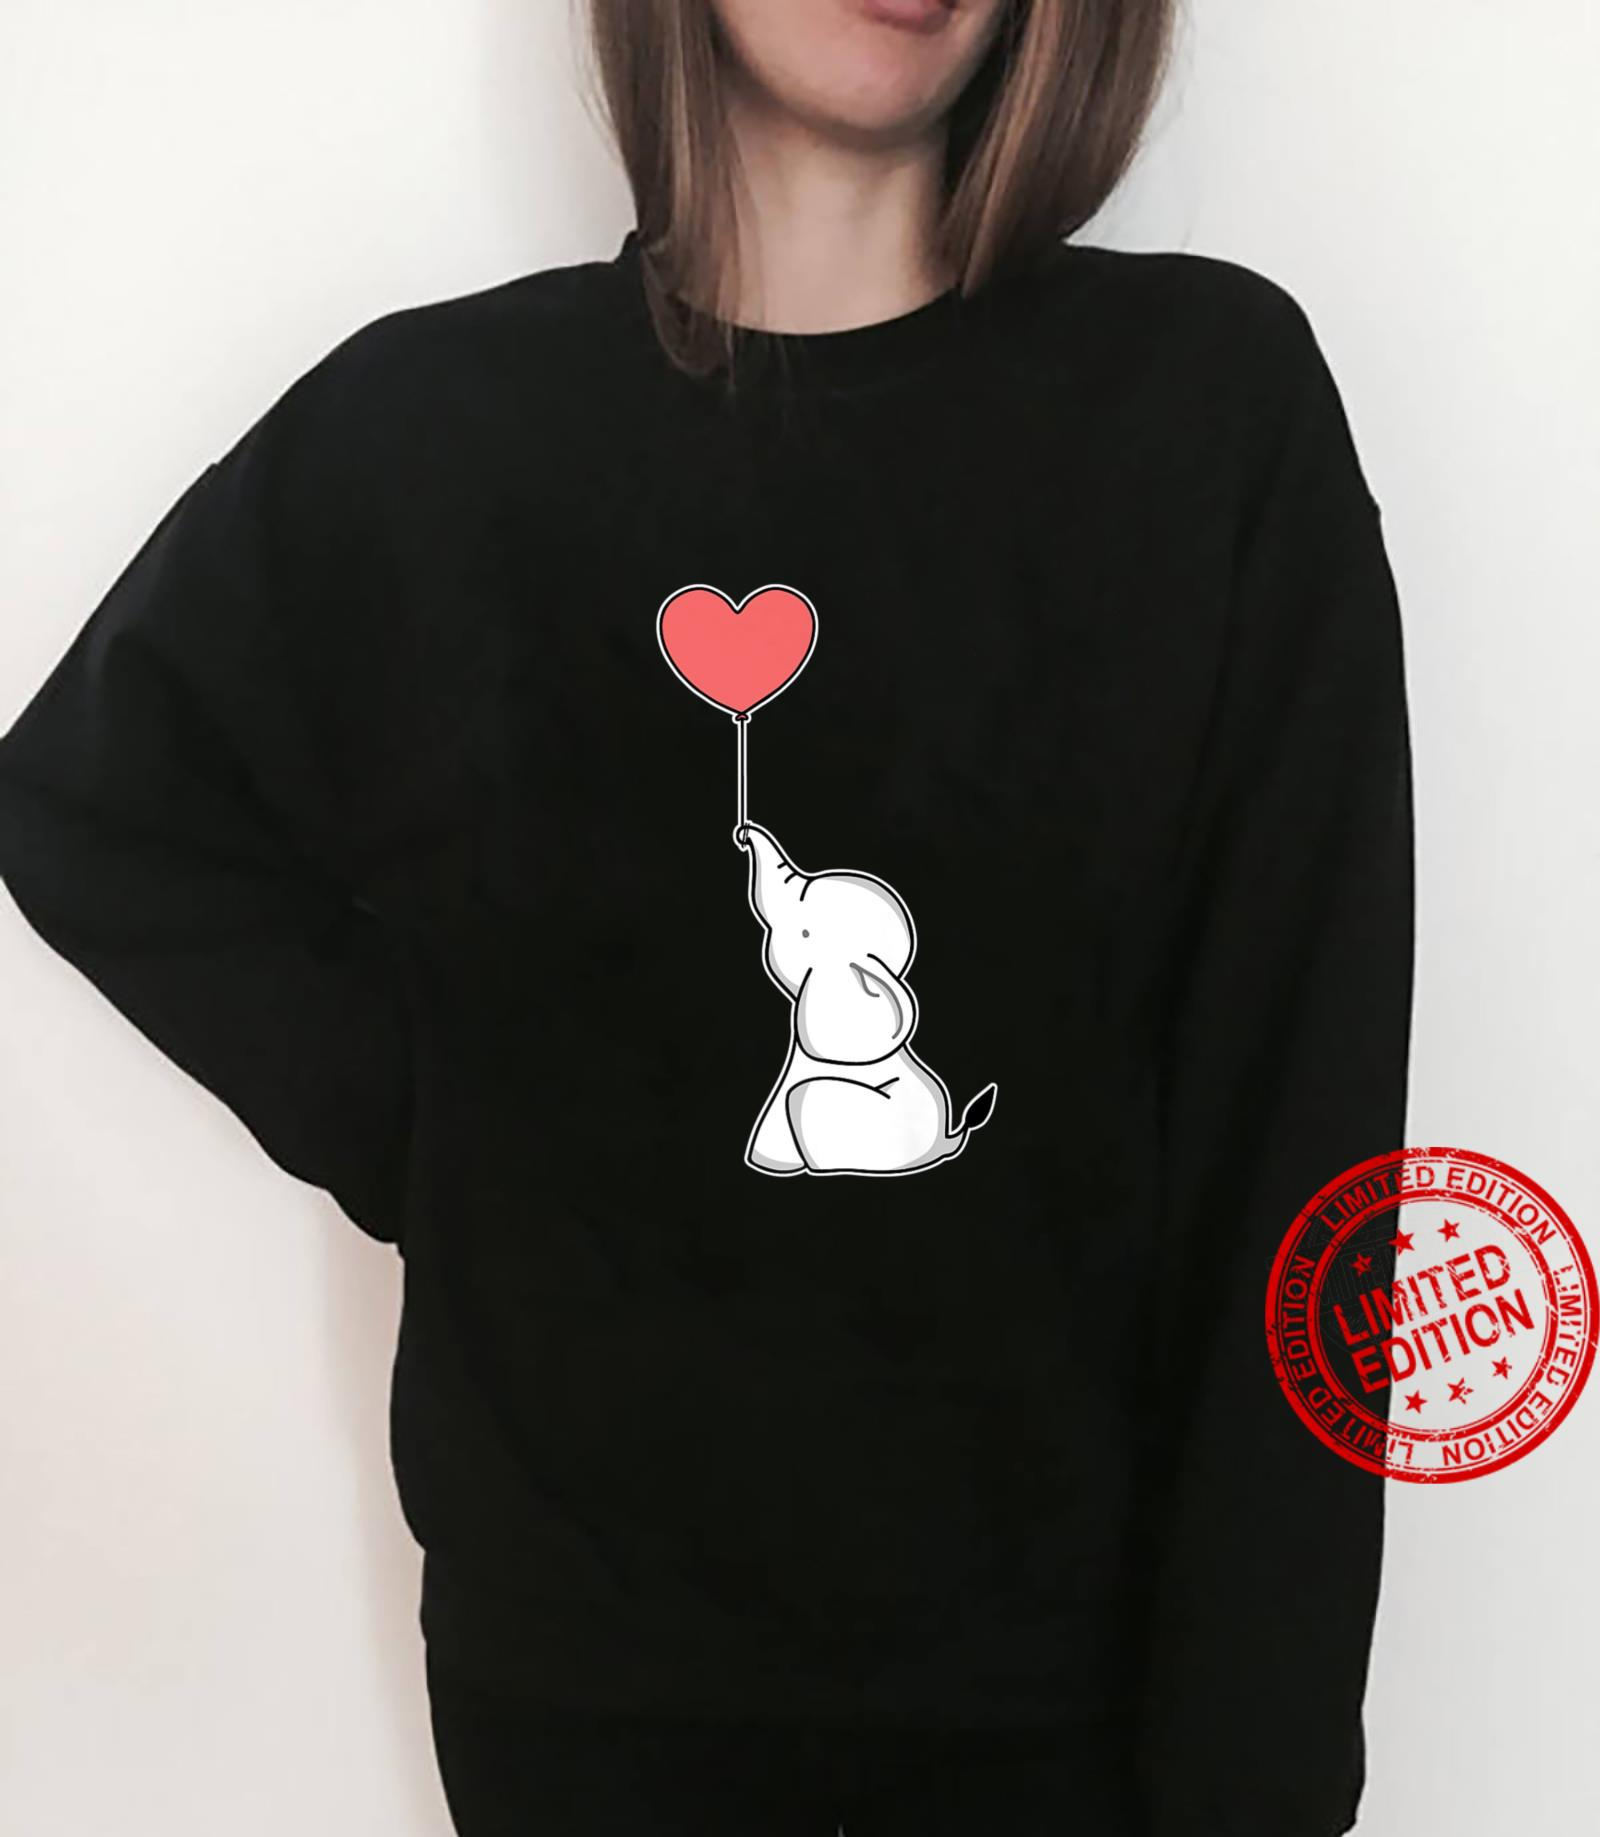 Cute Baby Elephant with Heart Balloon Shirt sweater